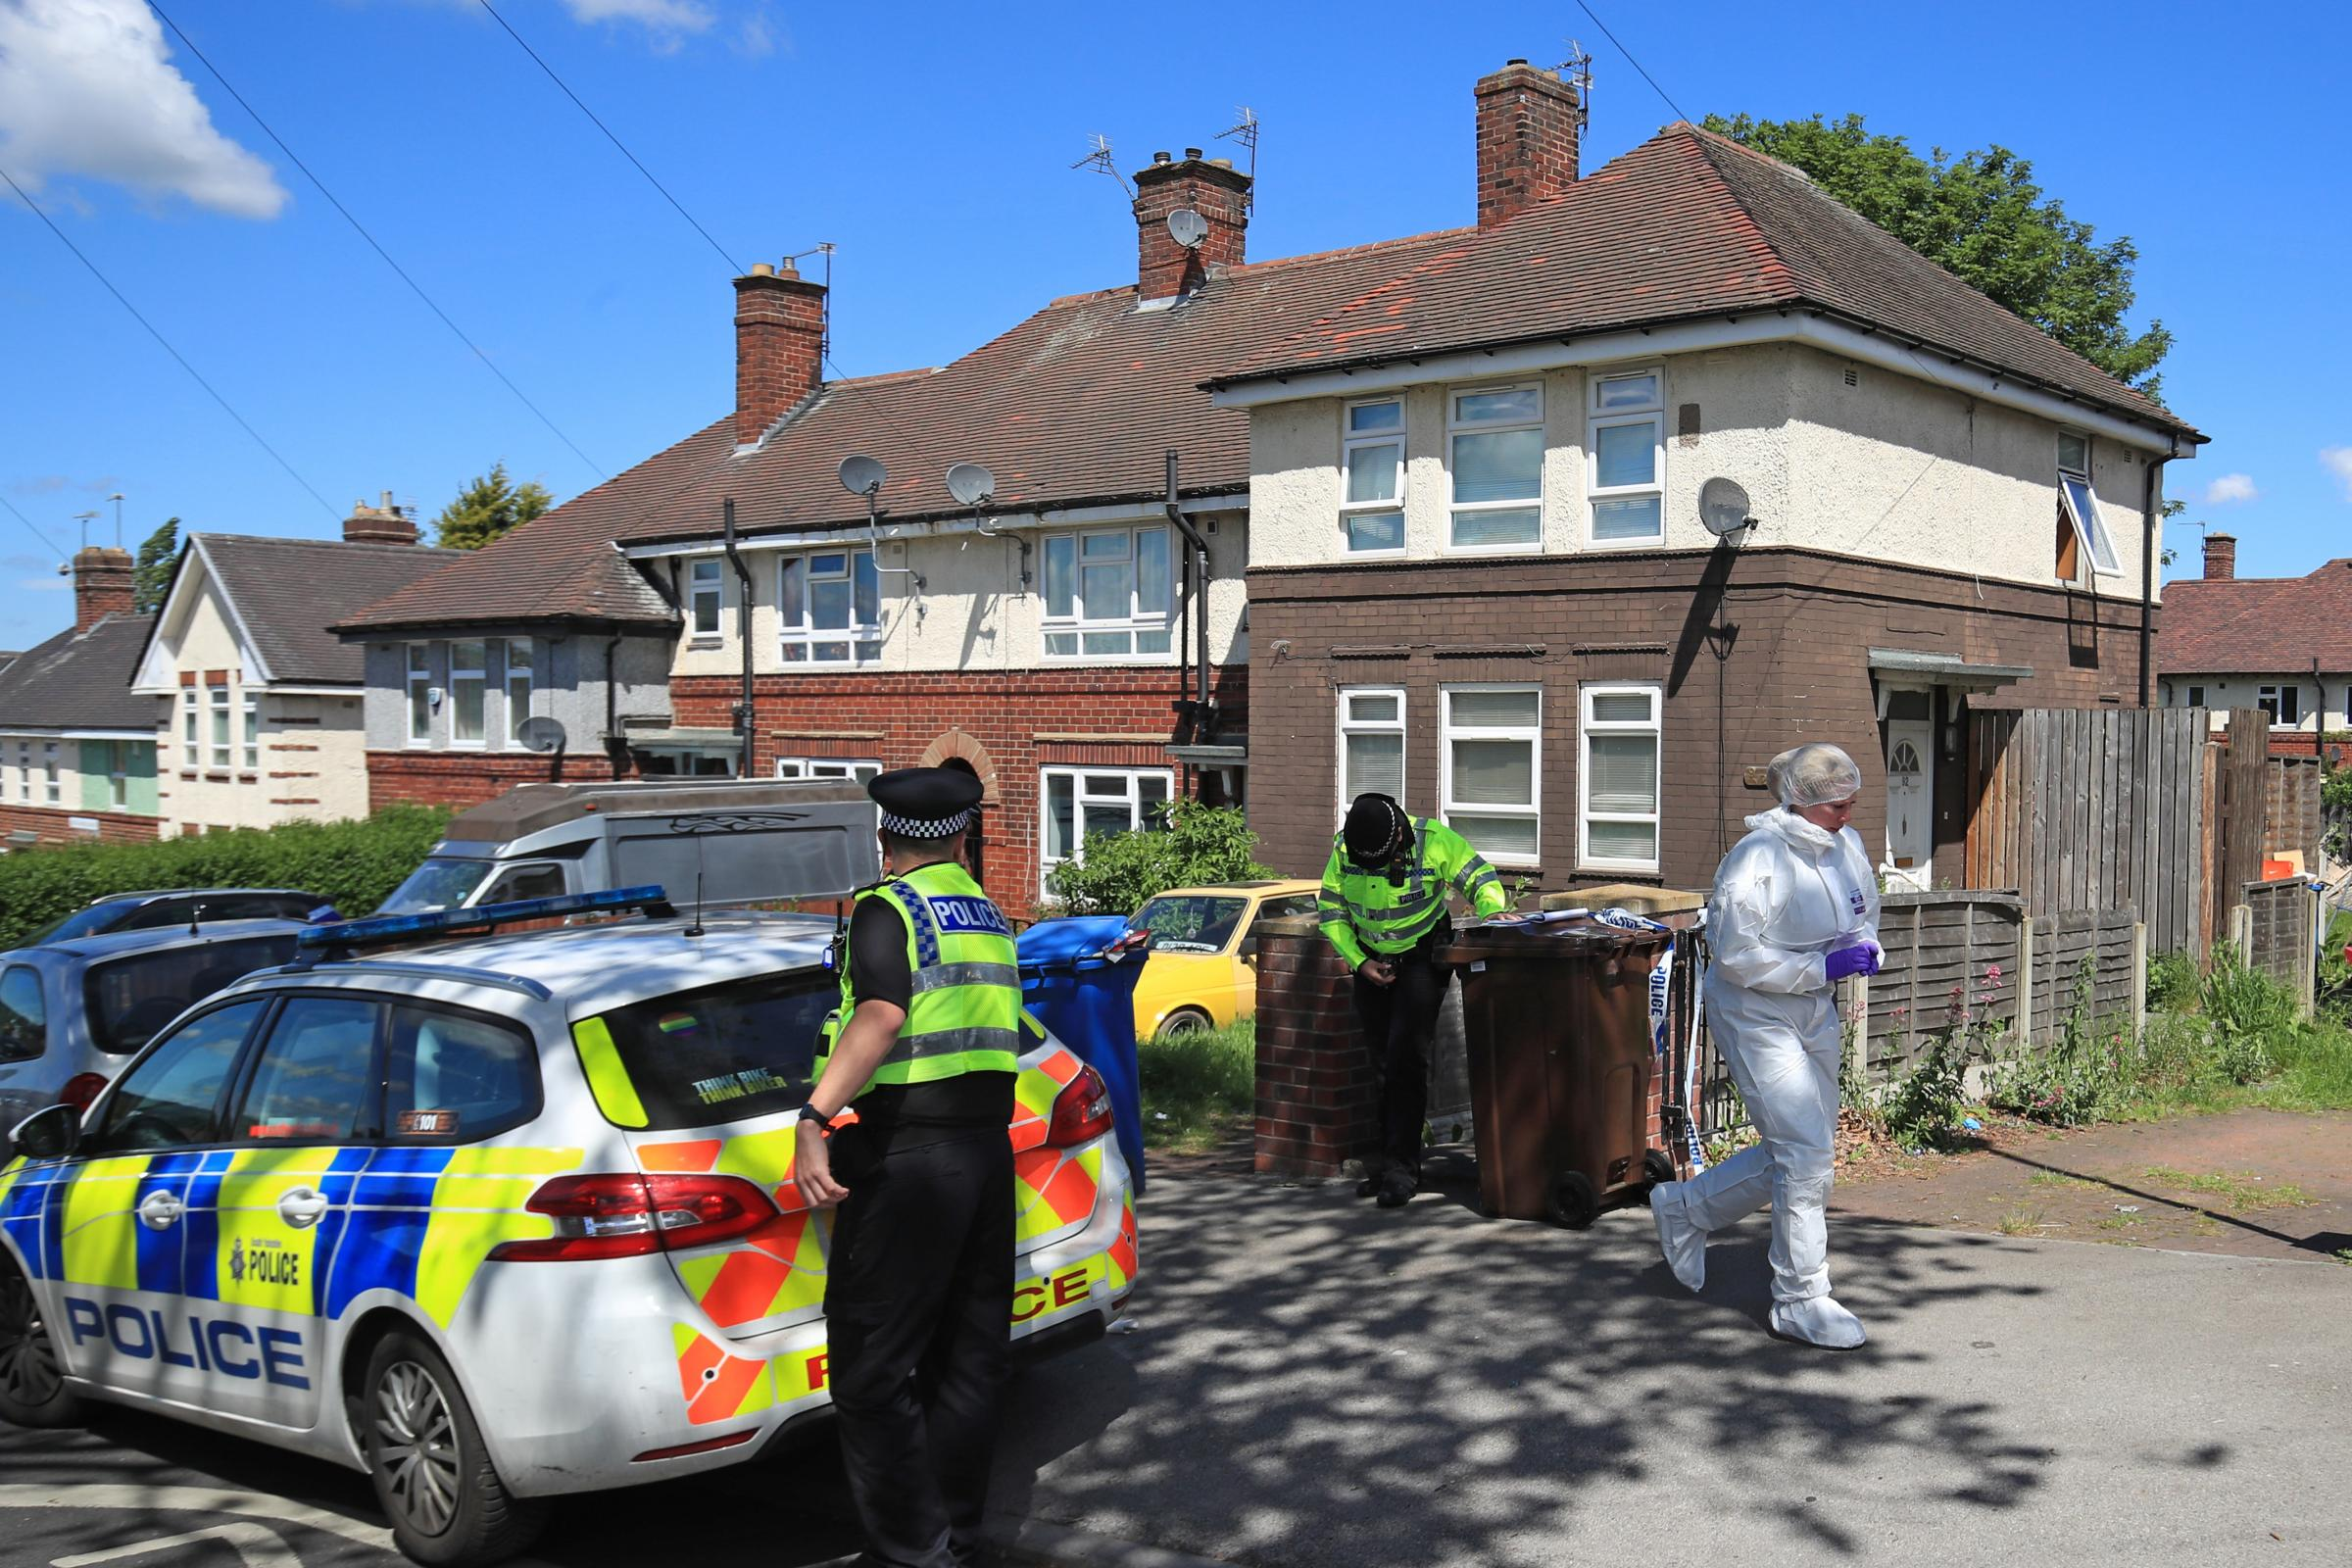 Police at a property on Gregg House Road in Shiregreen, Sheffield